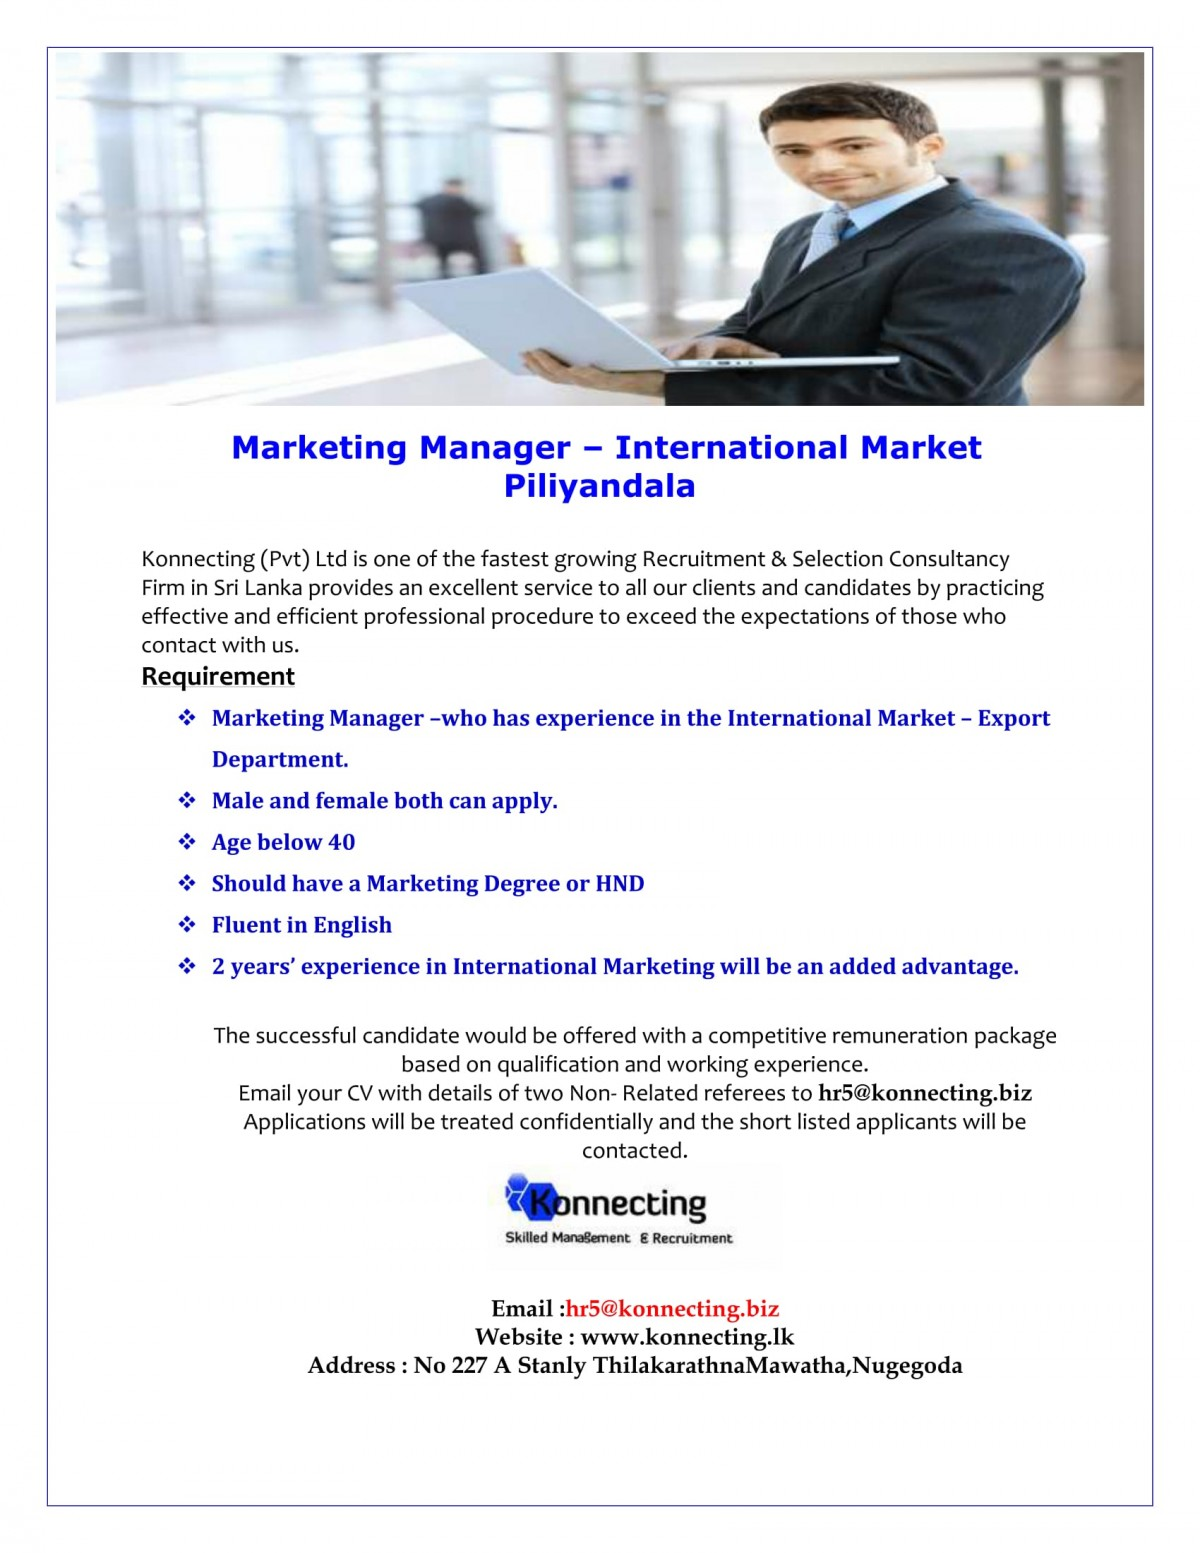 requirements marketing manager who has experience in the international market export department male and female both can apply age below 40 - International Marketing Manager